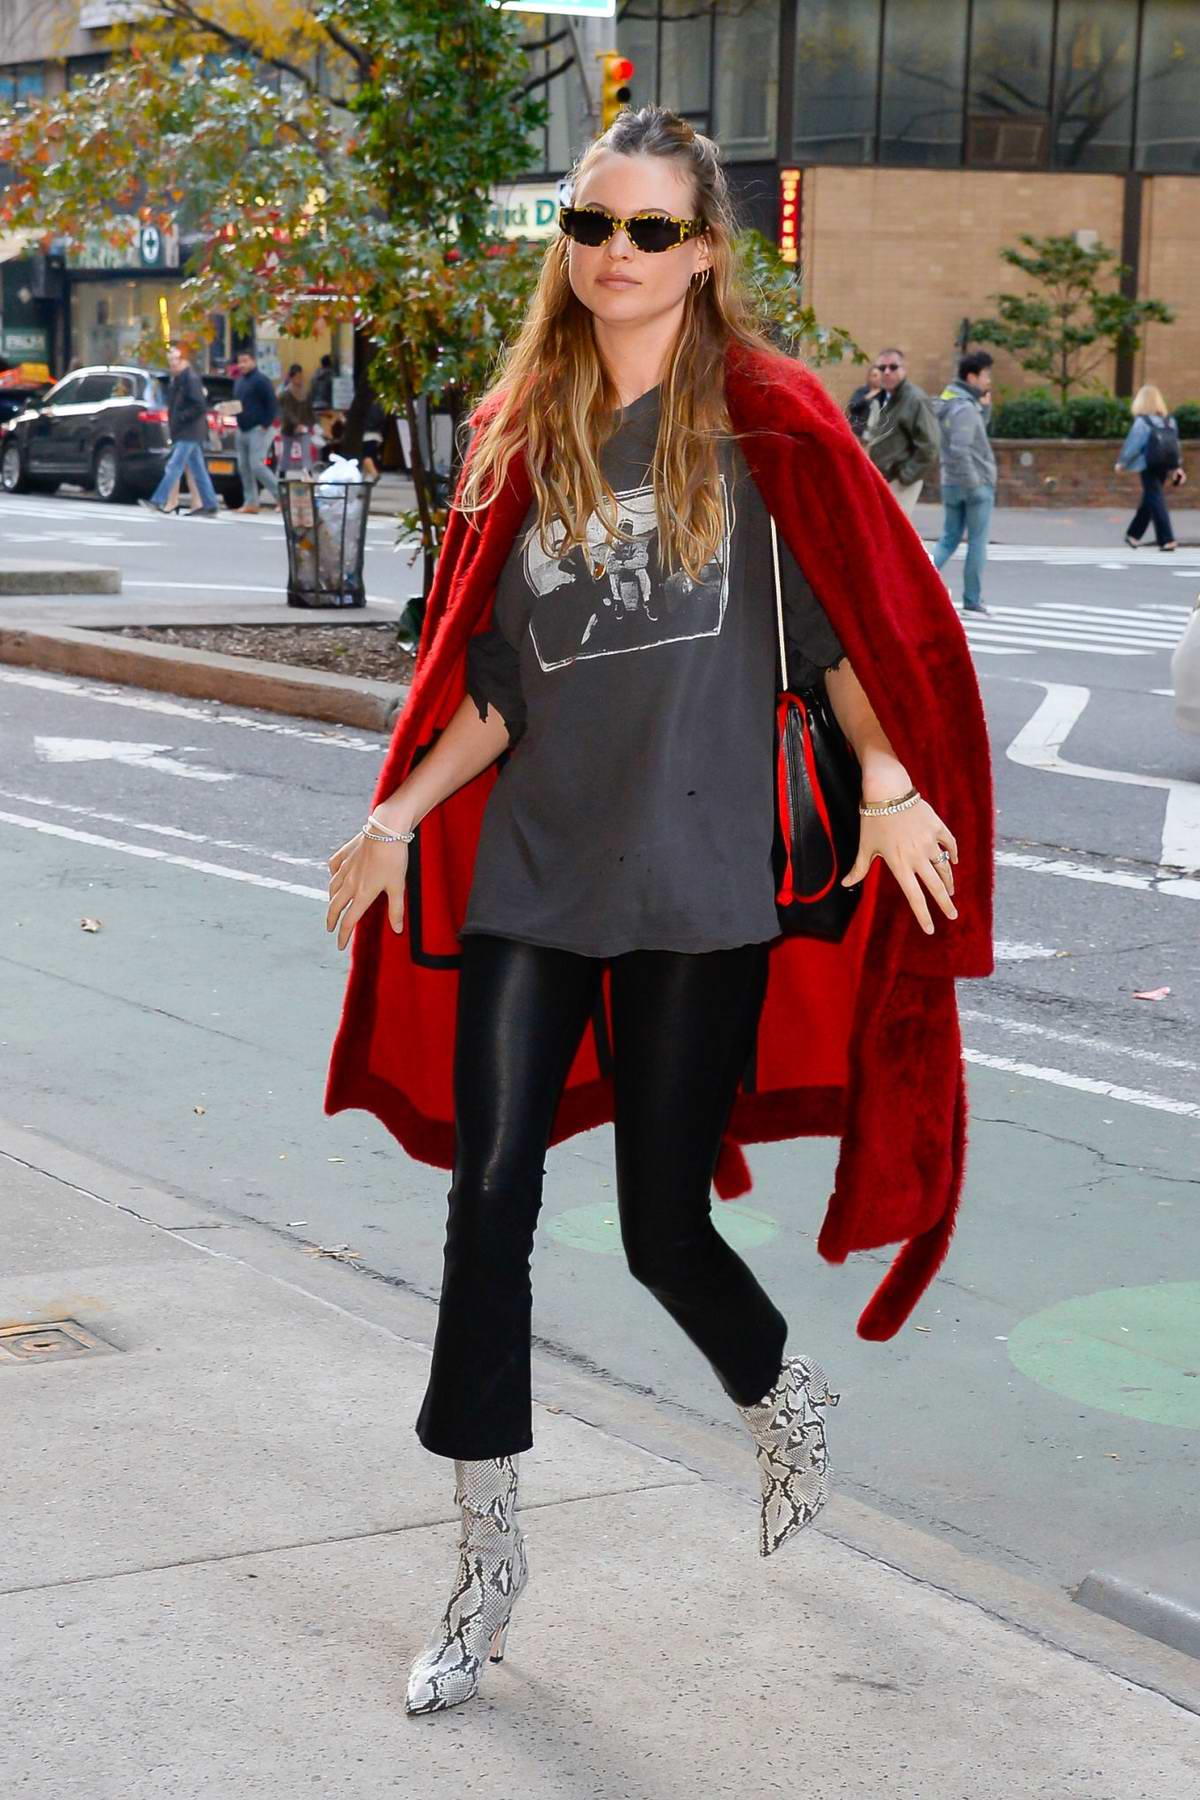 Behati Prinsloo rocks leather pants with snakeskin boots and red fur jacket as she arrives for rehearsals at the Victoria's Secret offices in New York City